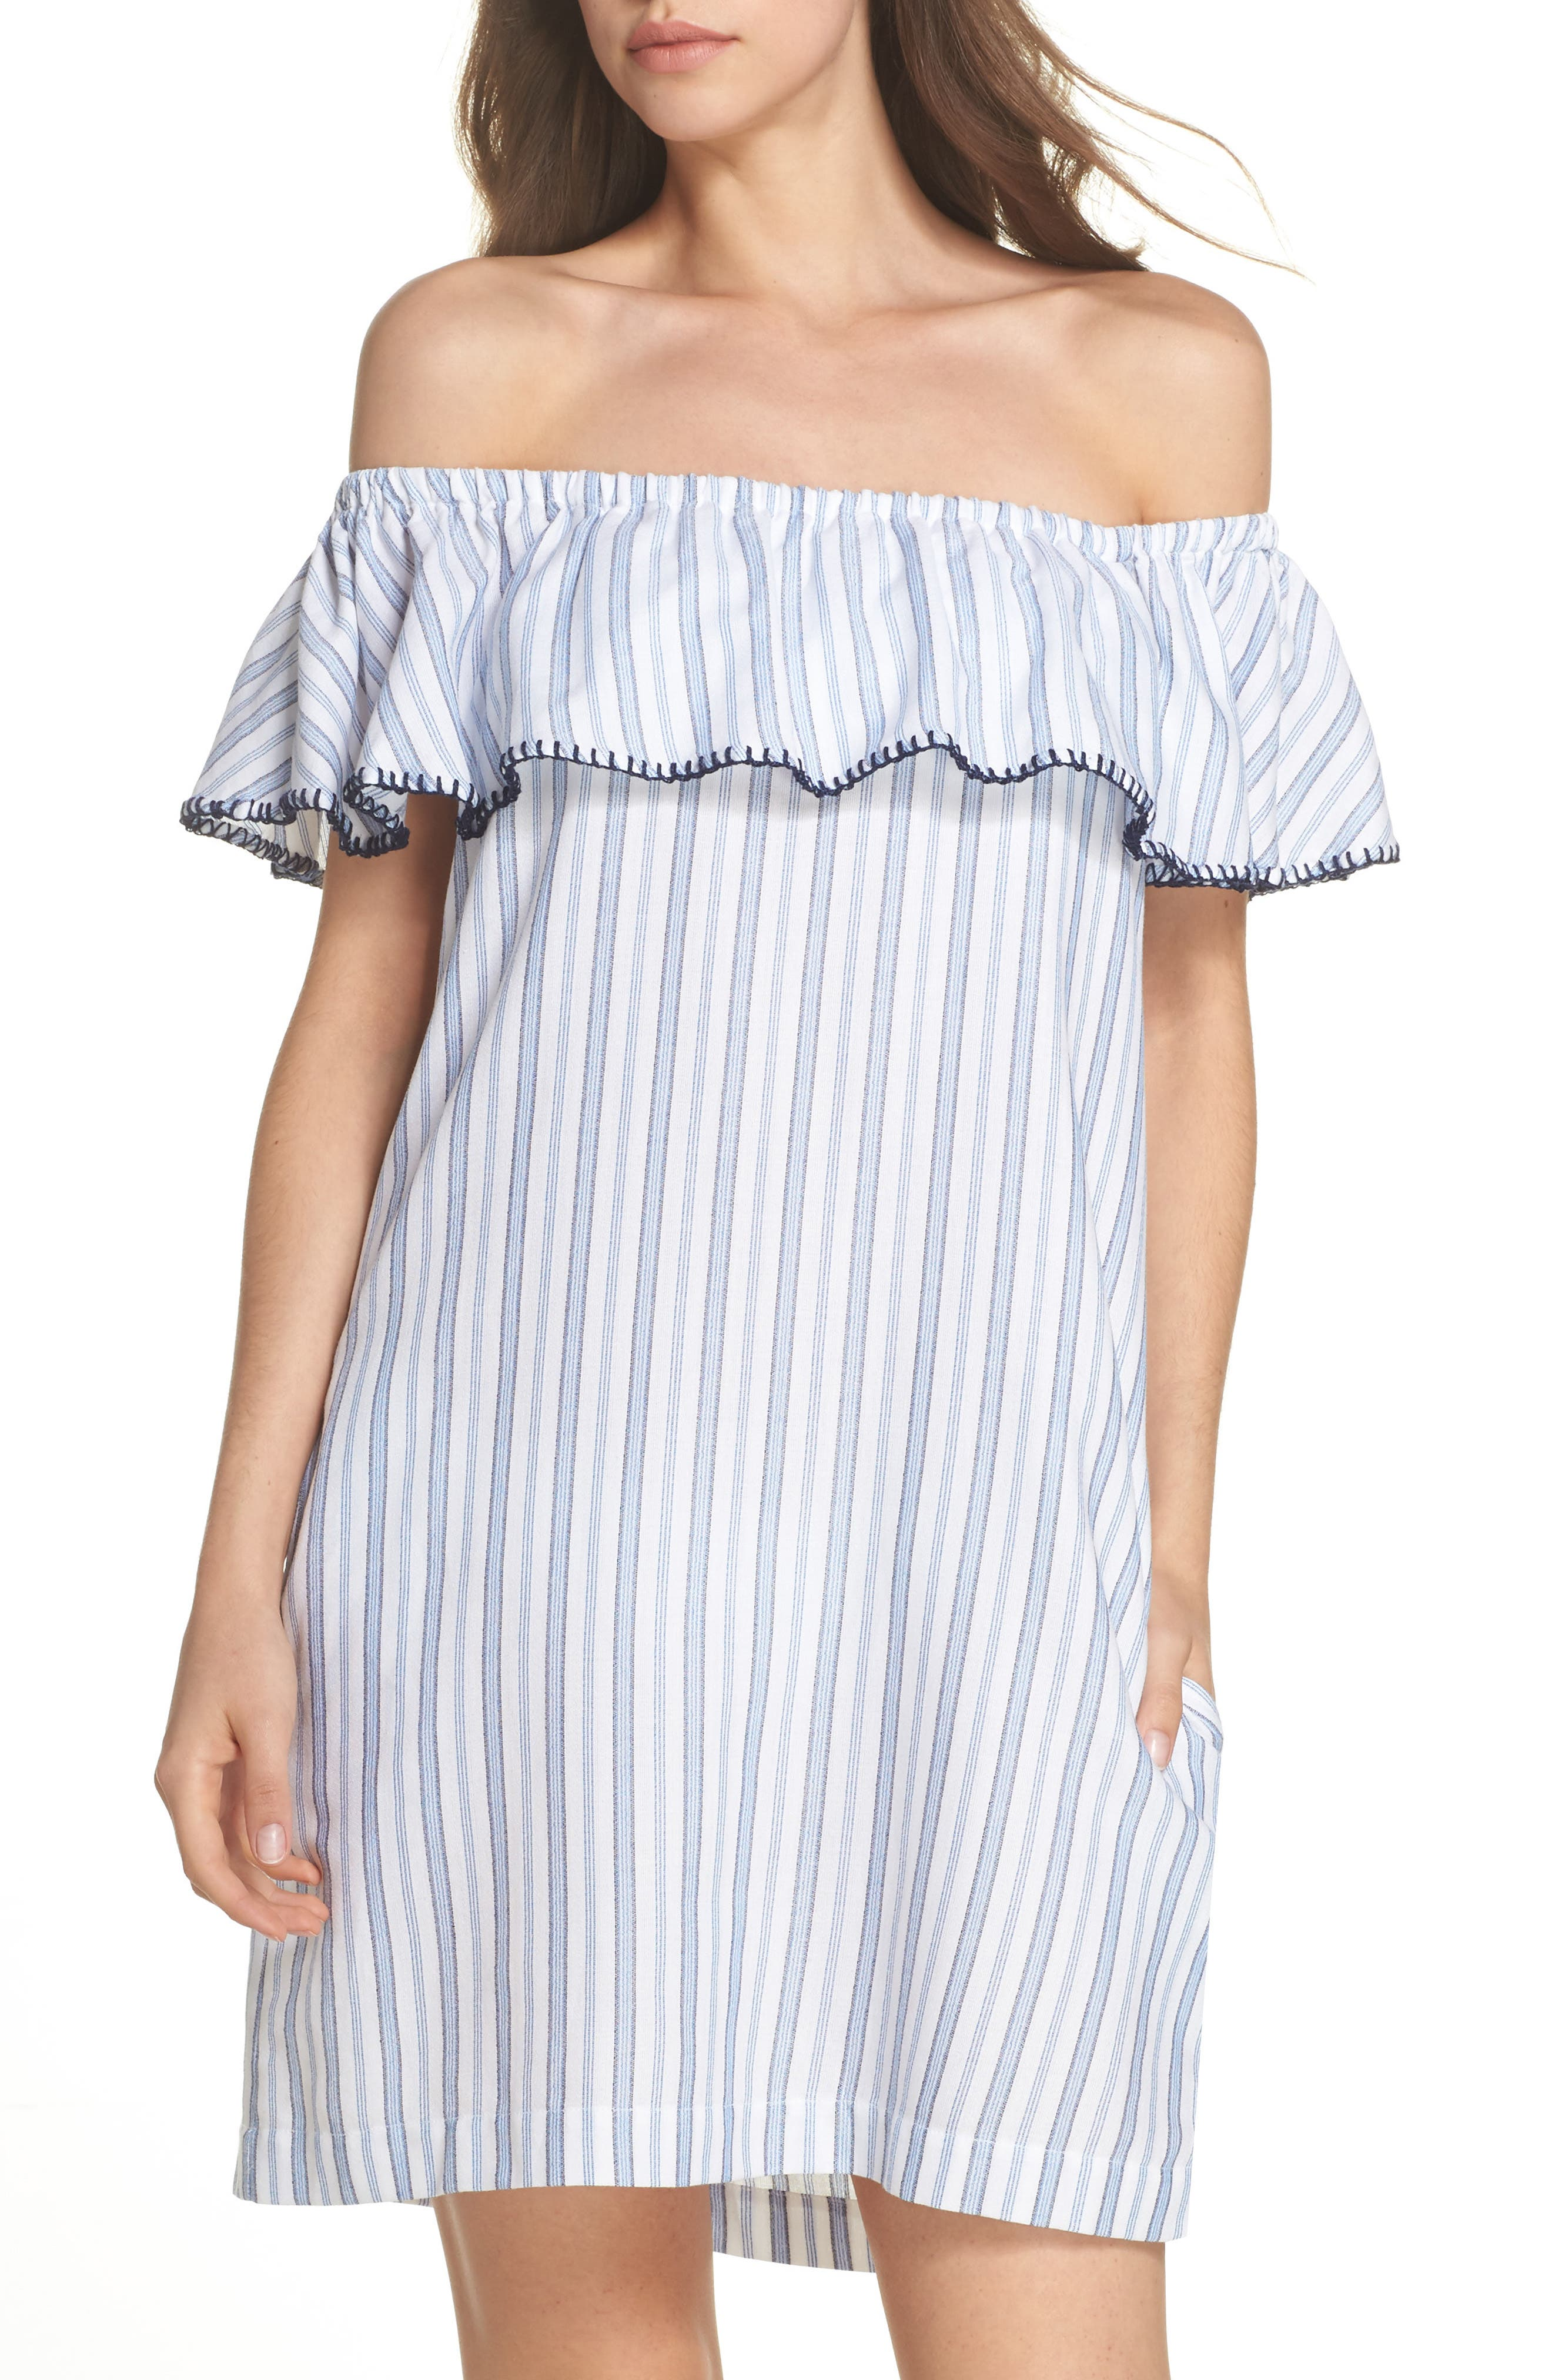 Ticking Stripe Off the Shoulder Cover-Up Dress,                         Main,                         color, White